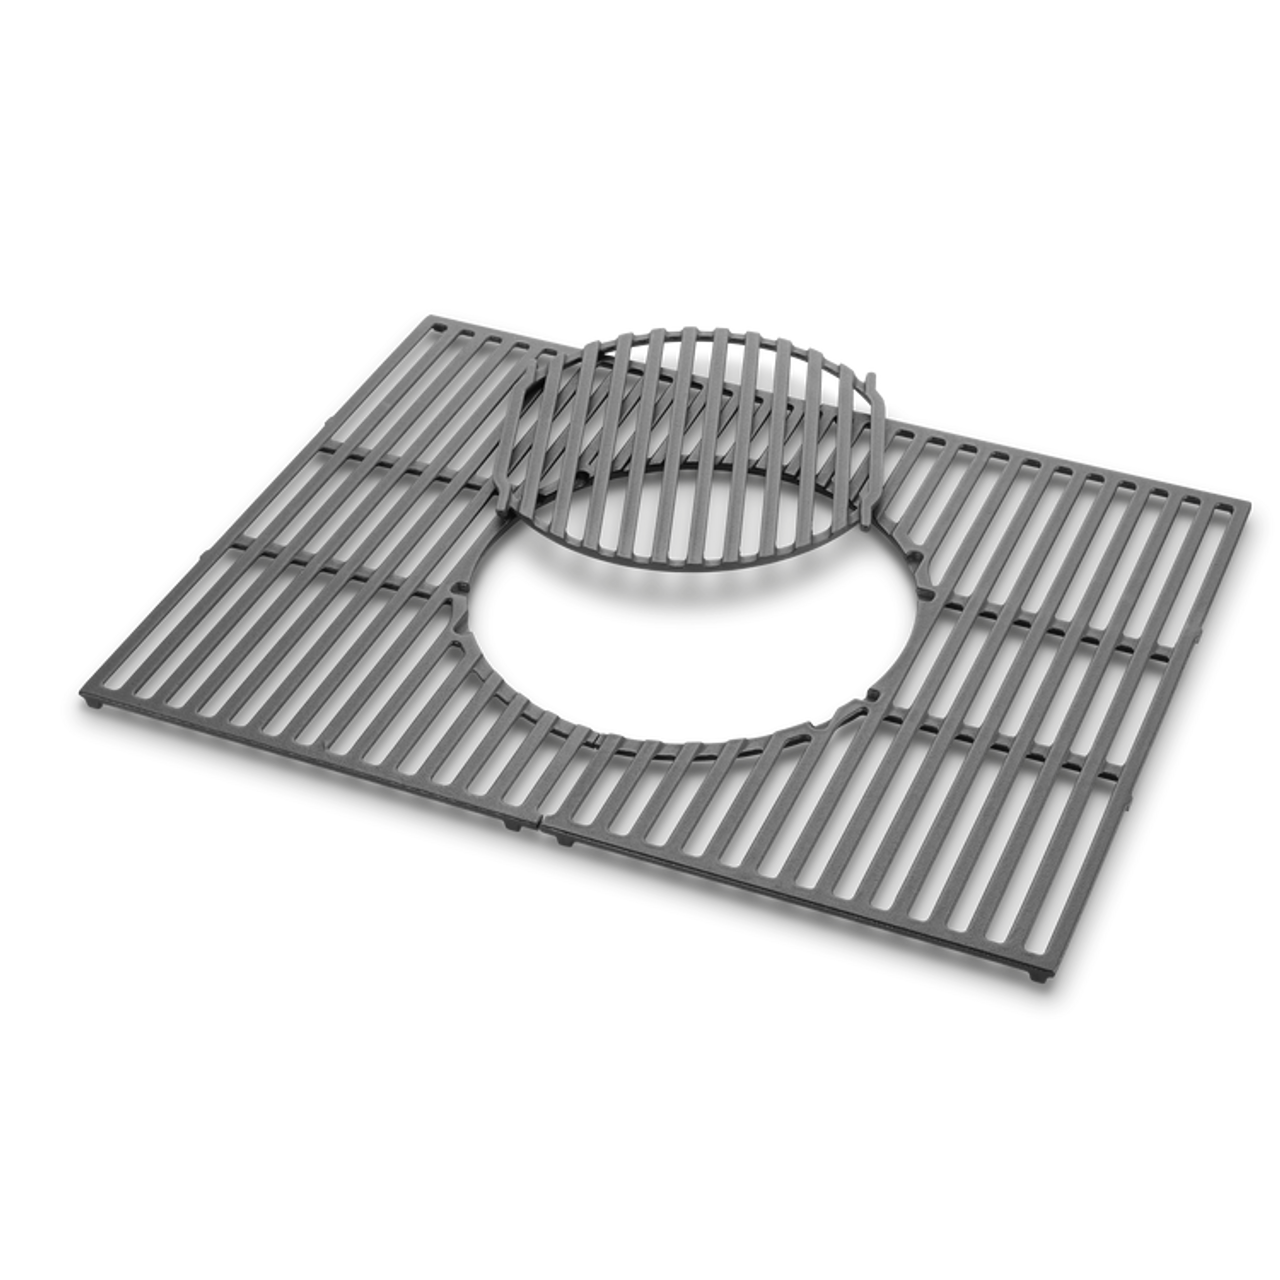 Weber® Original GBS® Cast Iron Genesis® Grate (2013 Models Onwards